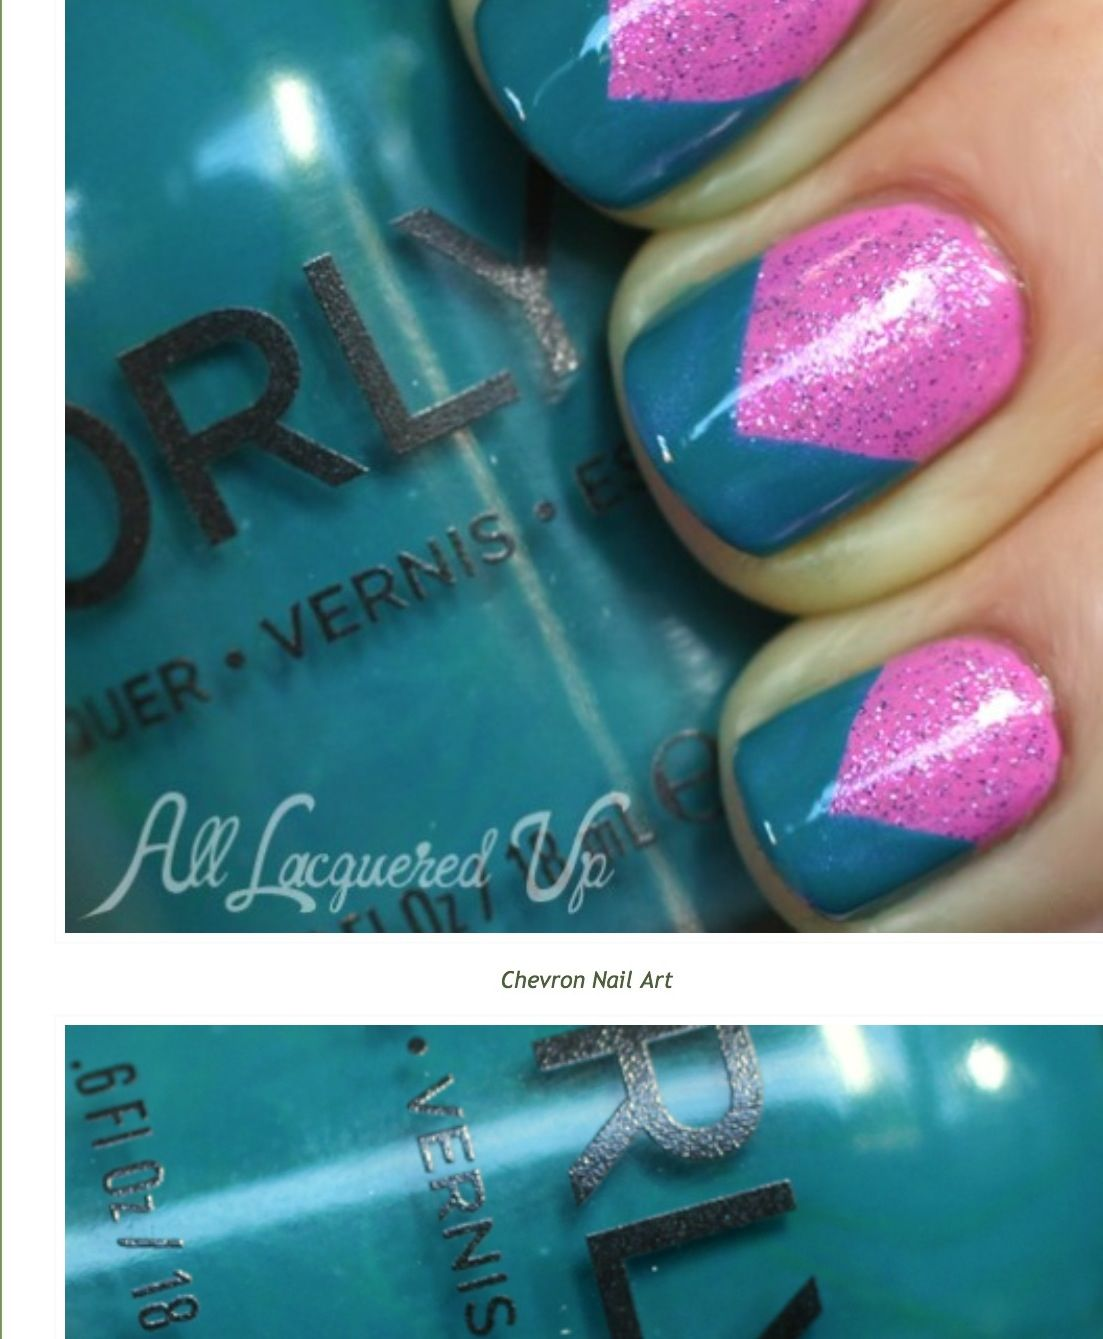 Orly Fall 2013 collection: pink waterfall, pixie powder, and teal ...